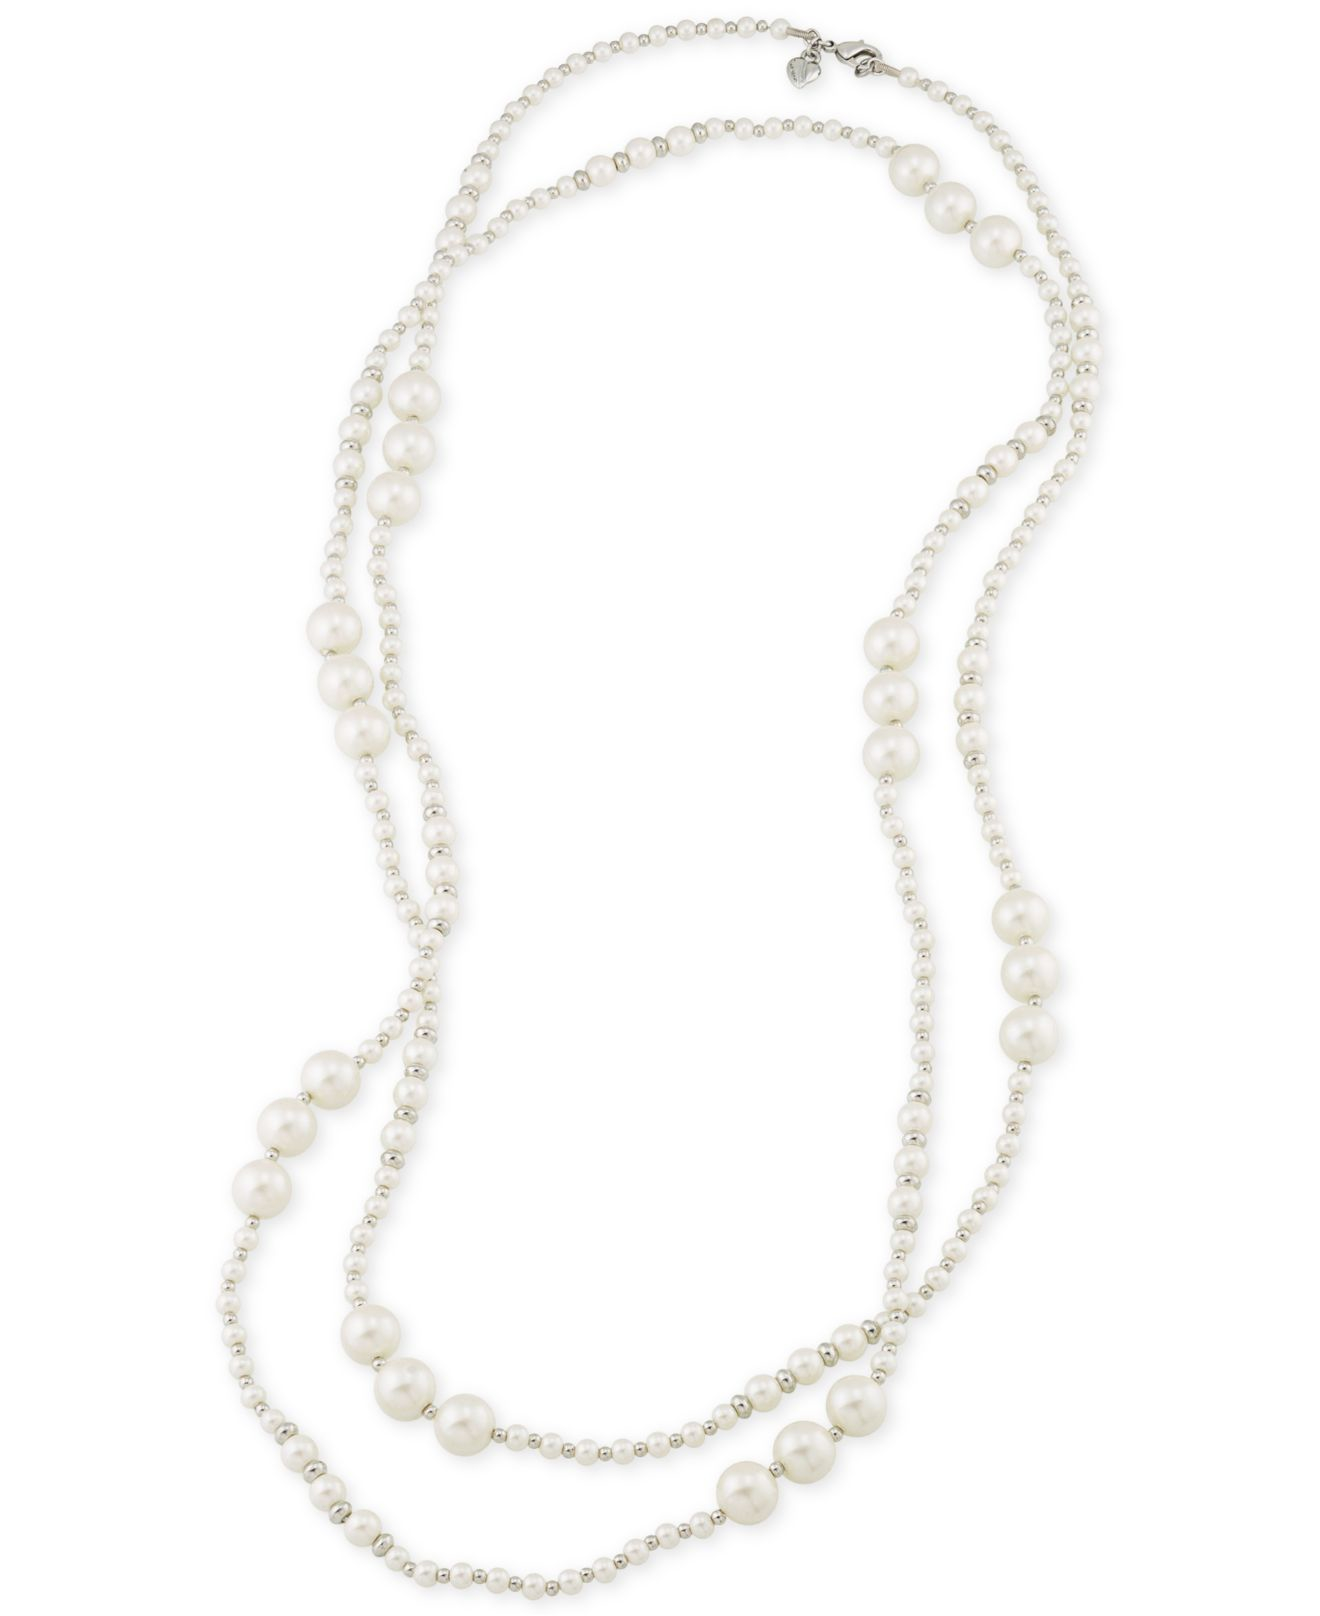 Carolee Silver Tone Imitation Pearl Long Rope Necklace Silver furthermore Sylva Cie Diamond Pave Link Bracelet Silver likewise Stephen Webster Les Dents De La Mer Bracelet Black likewise Alex And Ani French Royalty Bangle Russian Silver together with Sylva Cie Diamond Oval Link Bracelet Whtgold. on cie jewelry bracelets